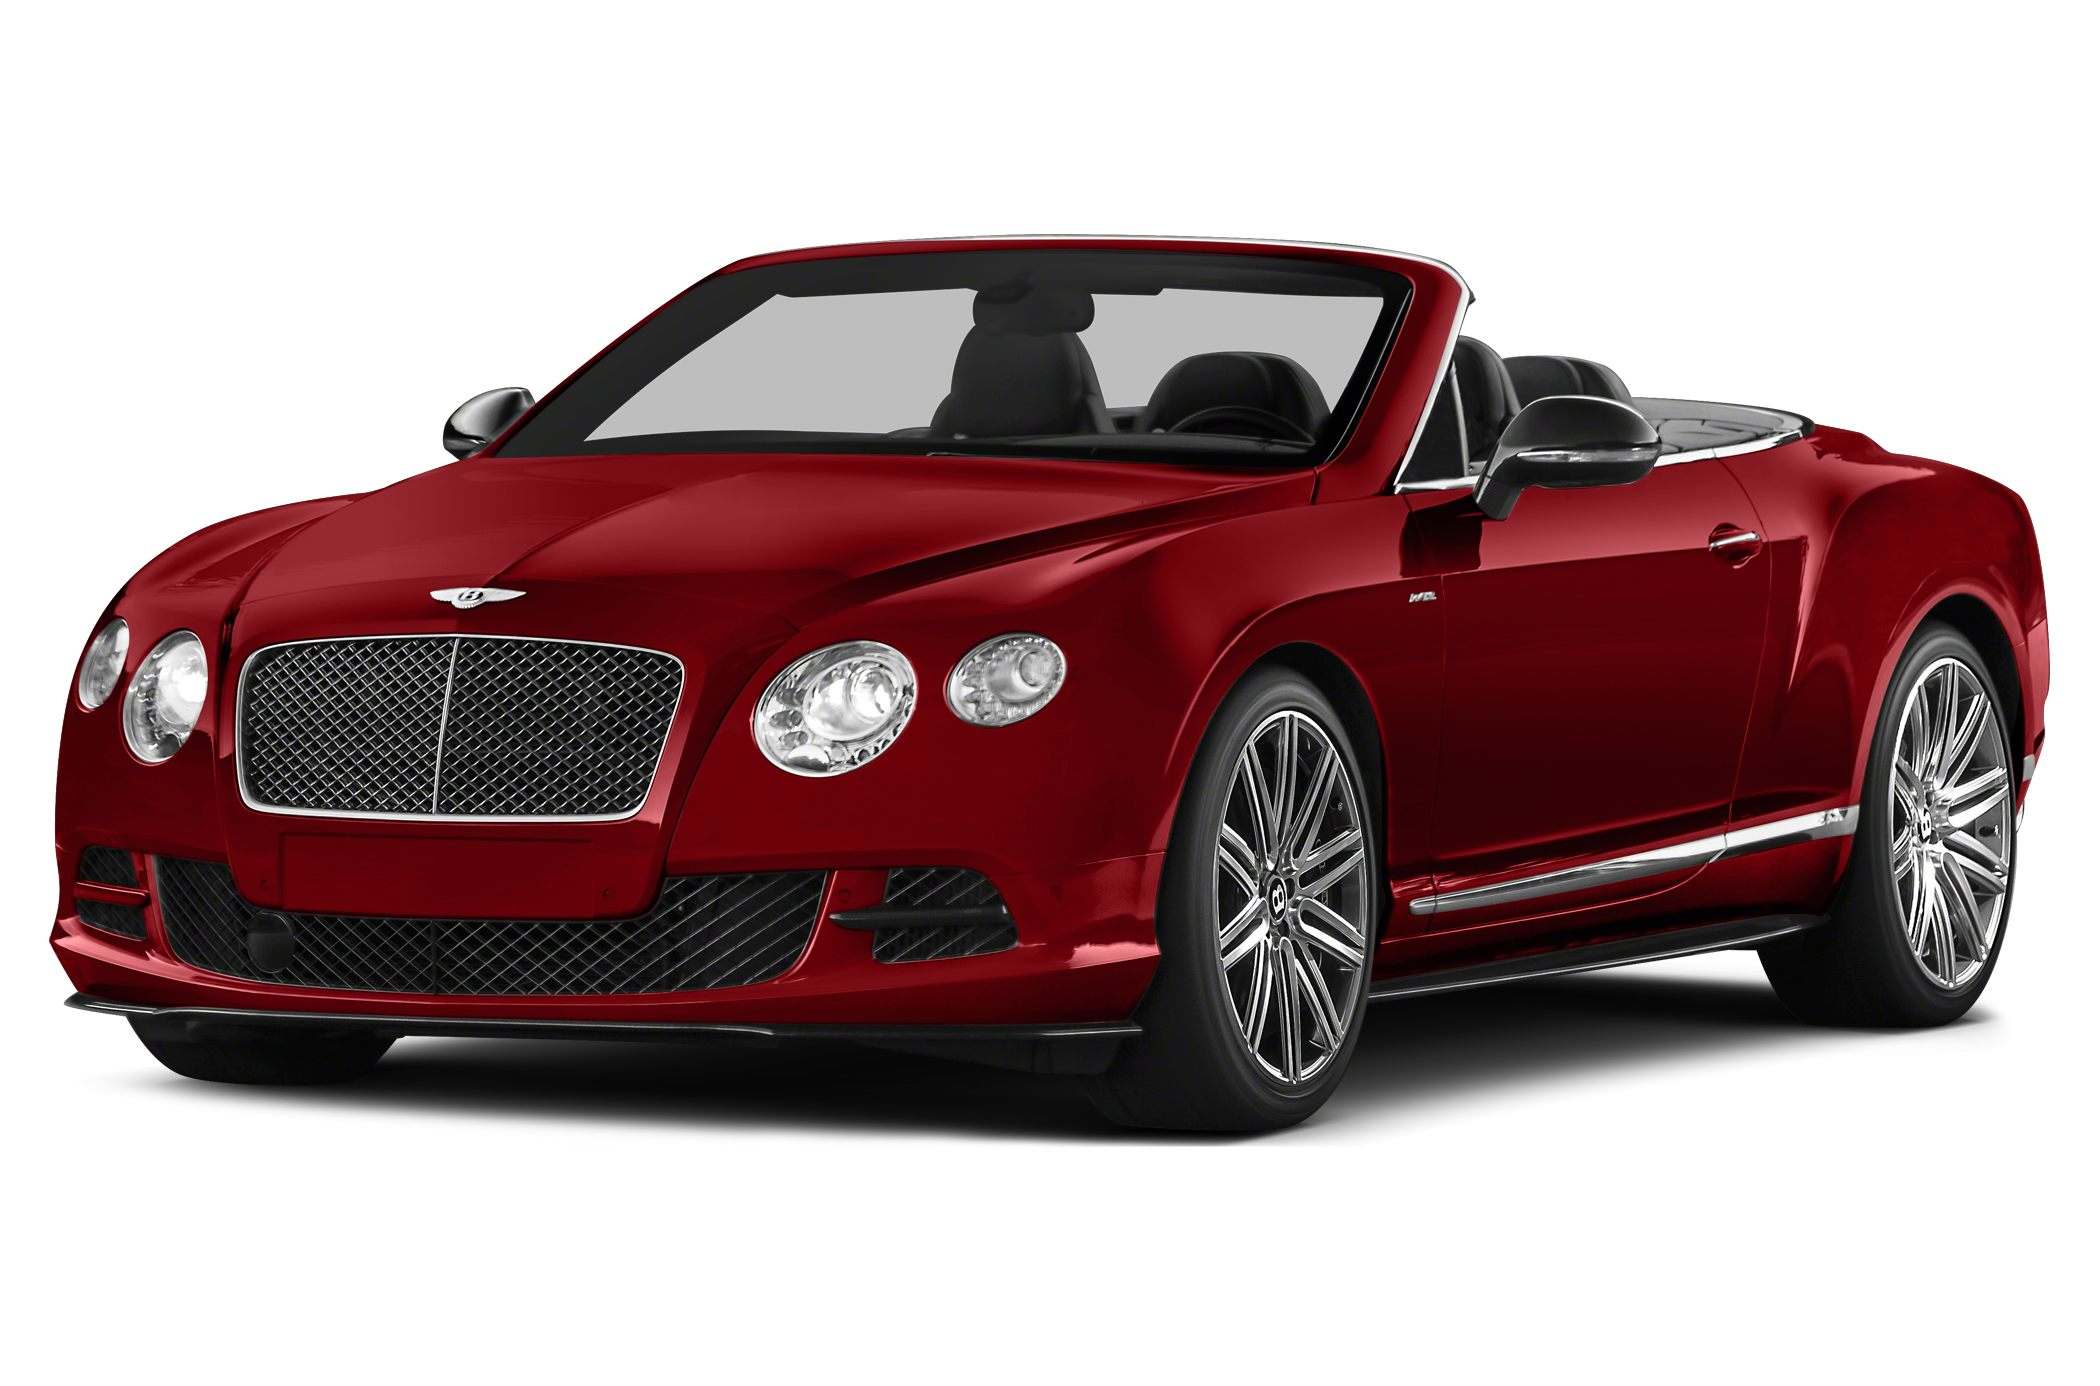 2014 Bentley Continental GTC Speed Convertible for sale in Alpharetta for $259,070 with 499 miles